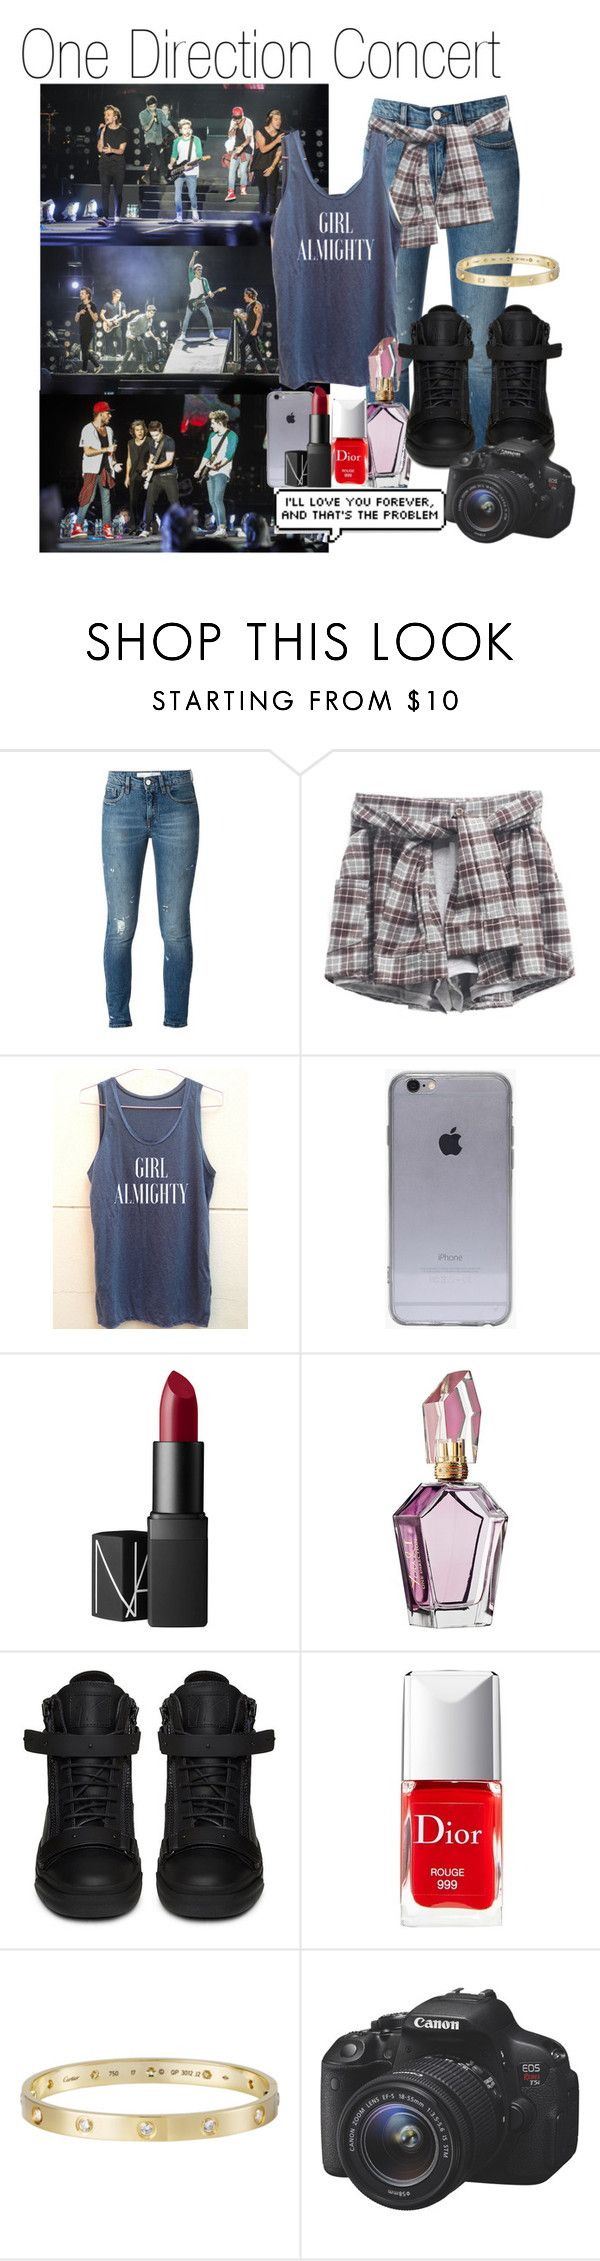 """One Direction Concert (Requested)"" by one-direction-outfitsxxx ❤ liked on Polyvore featuring dVb Victoria Beckham, NARS Cosmetics, Giuseppe Zanotti, Christian Dior and Eos"